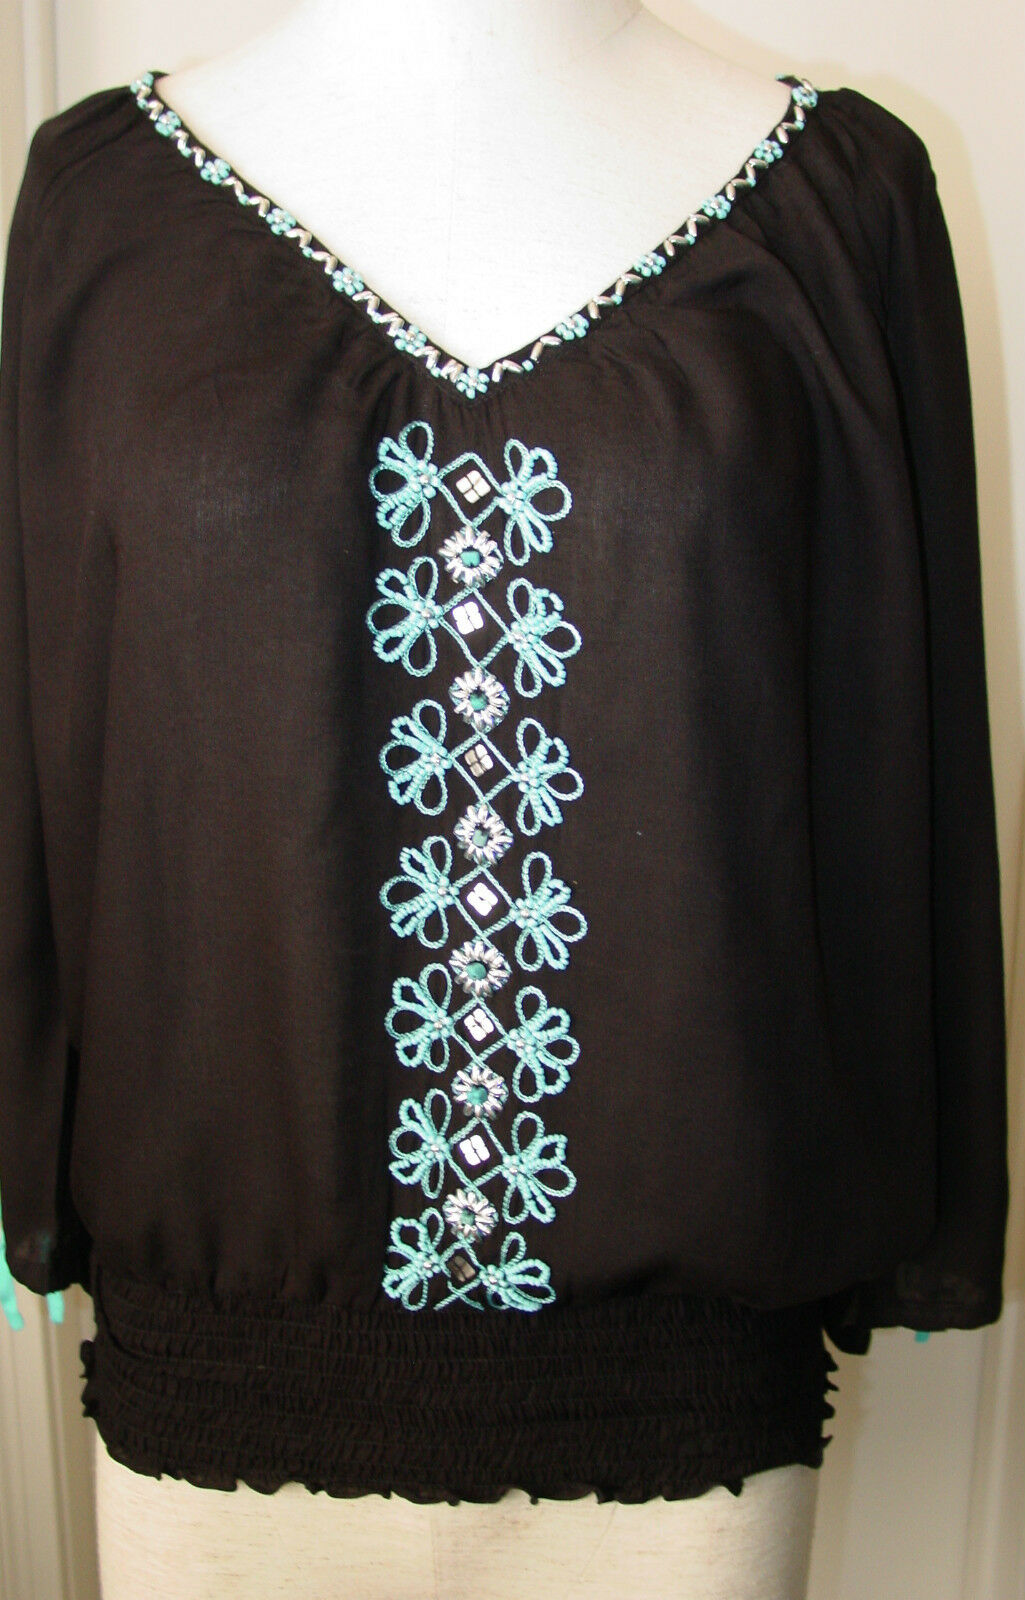 Woherren Top Blouse schwarz Turquoise Cold Shoulder Krista Lee Montego Bay Elastic